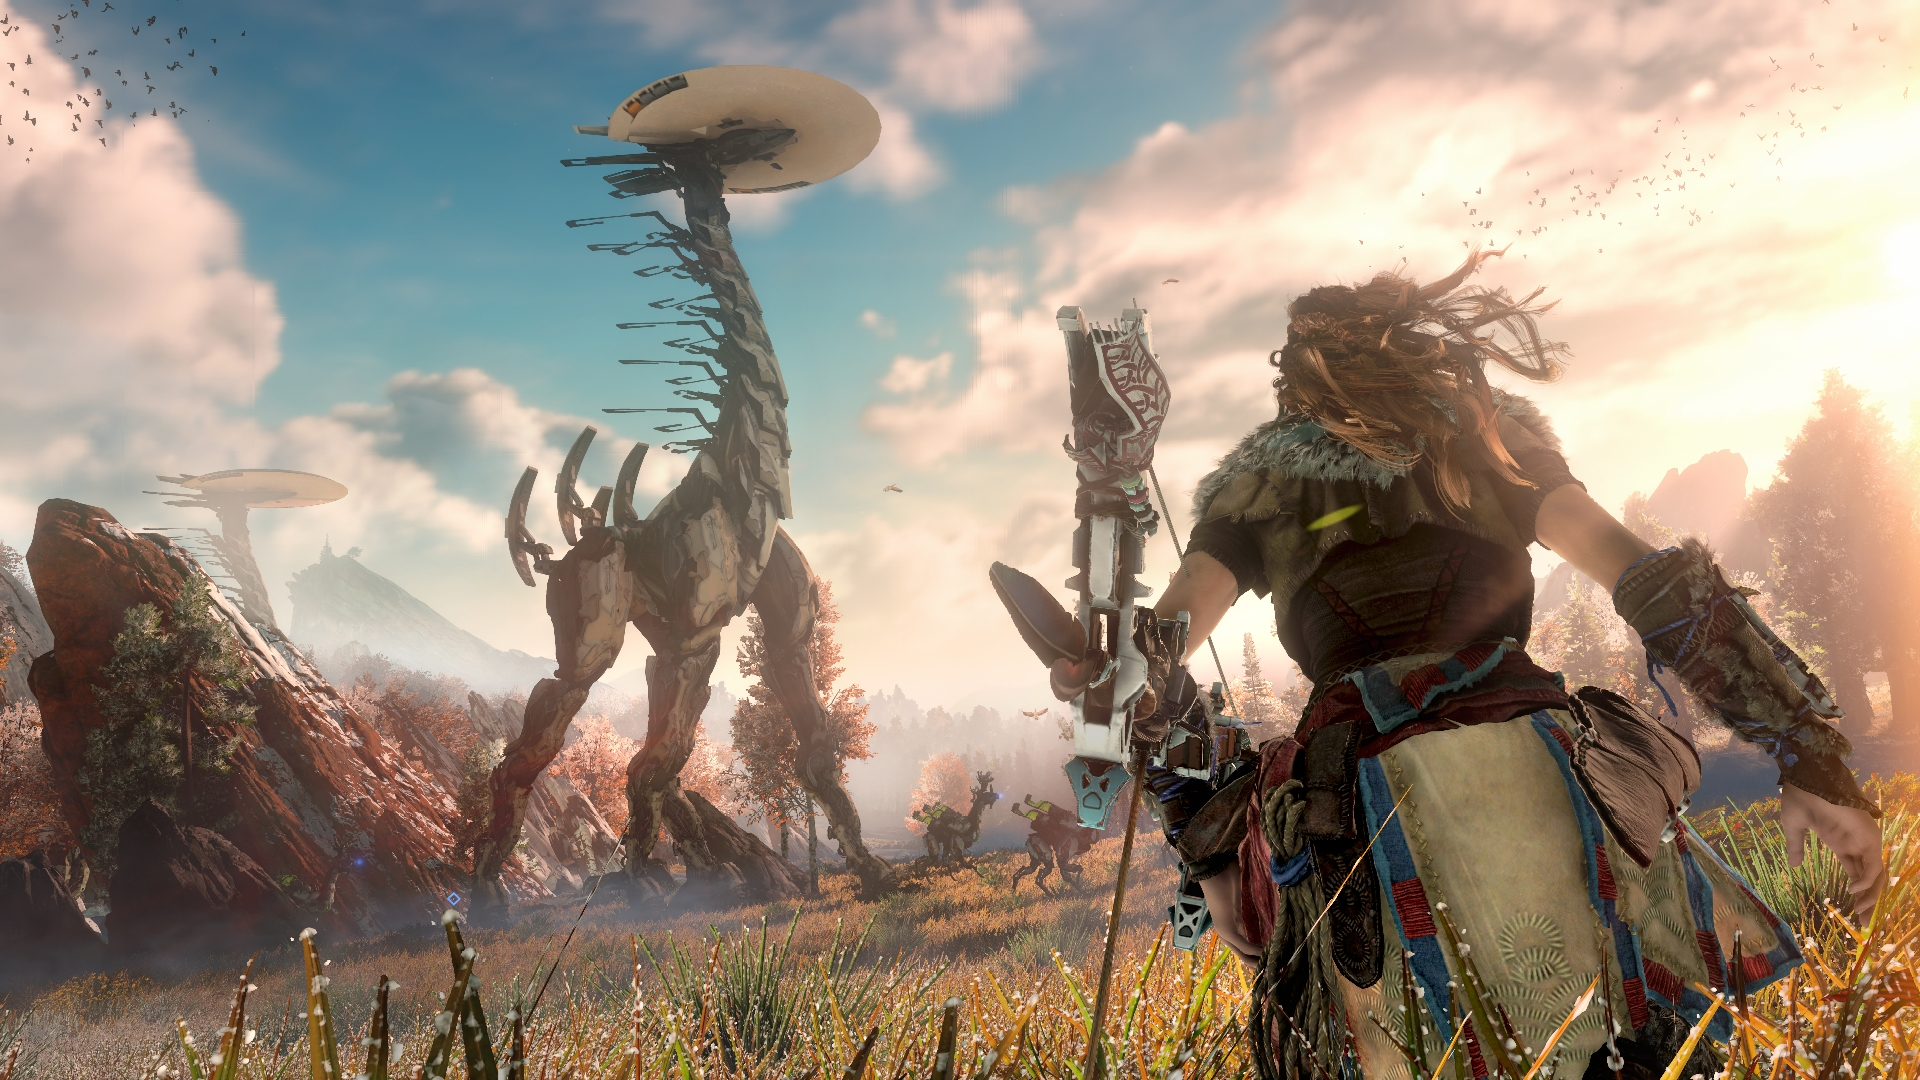 https://p3.no/filmpolitiet/wp-content/uploads/2017/12/horizon-zero-dawn1.jpg